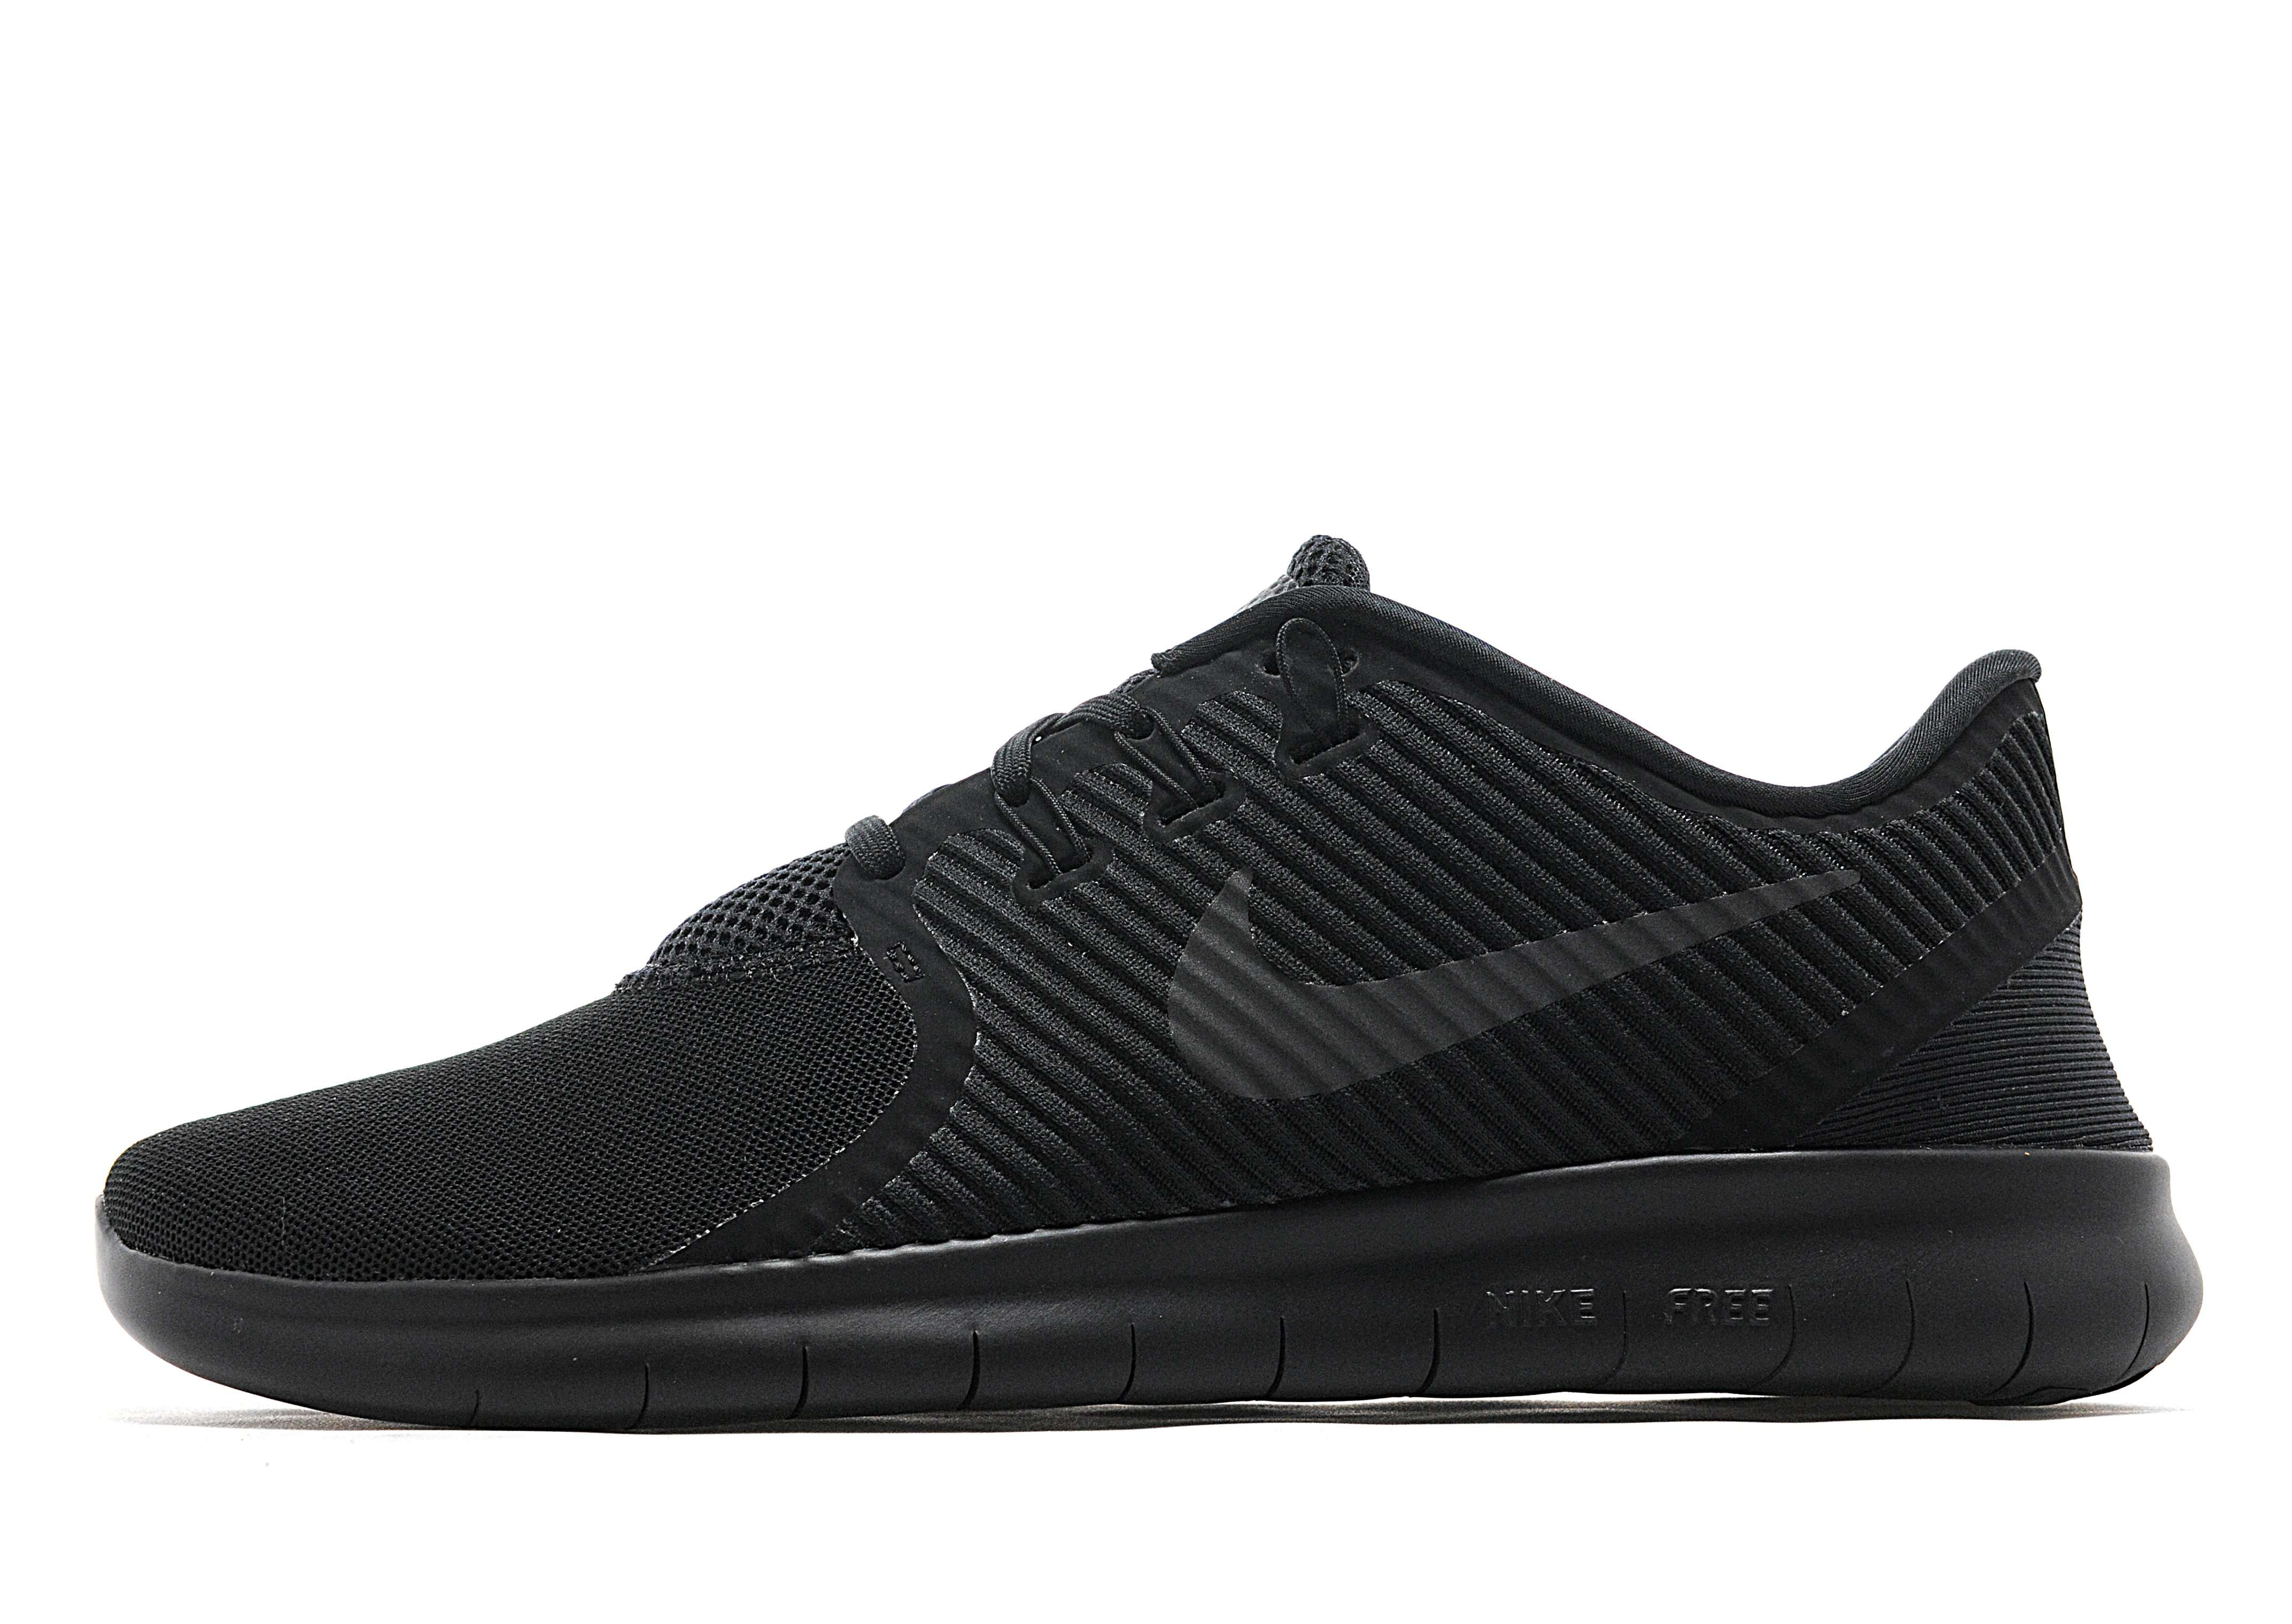 nike free run commuter jd sports. Black Bedroom Furniture Sets. Home Design Ideas